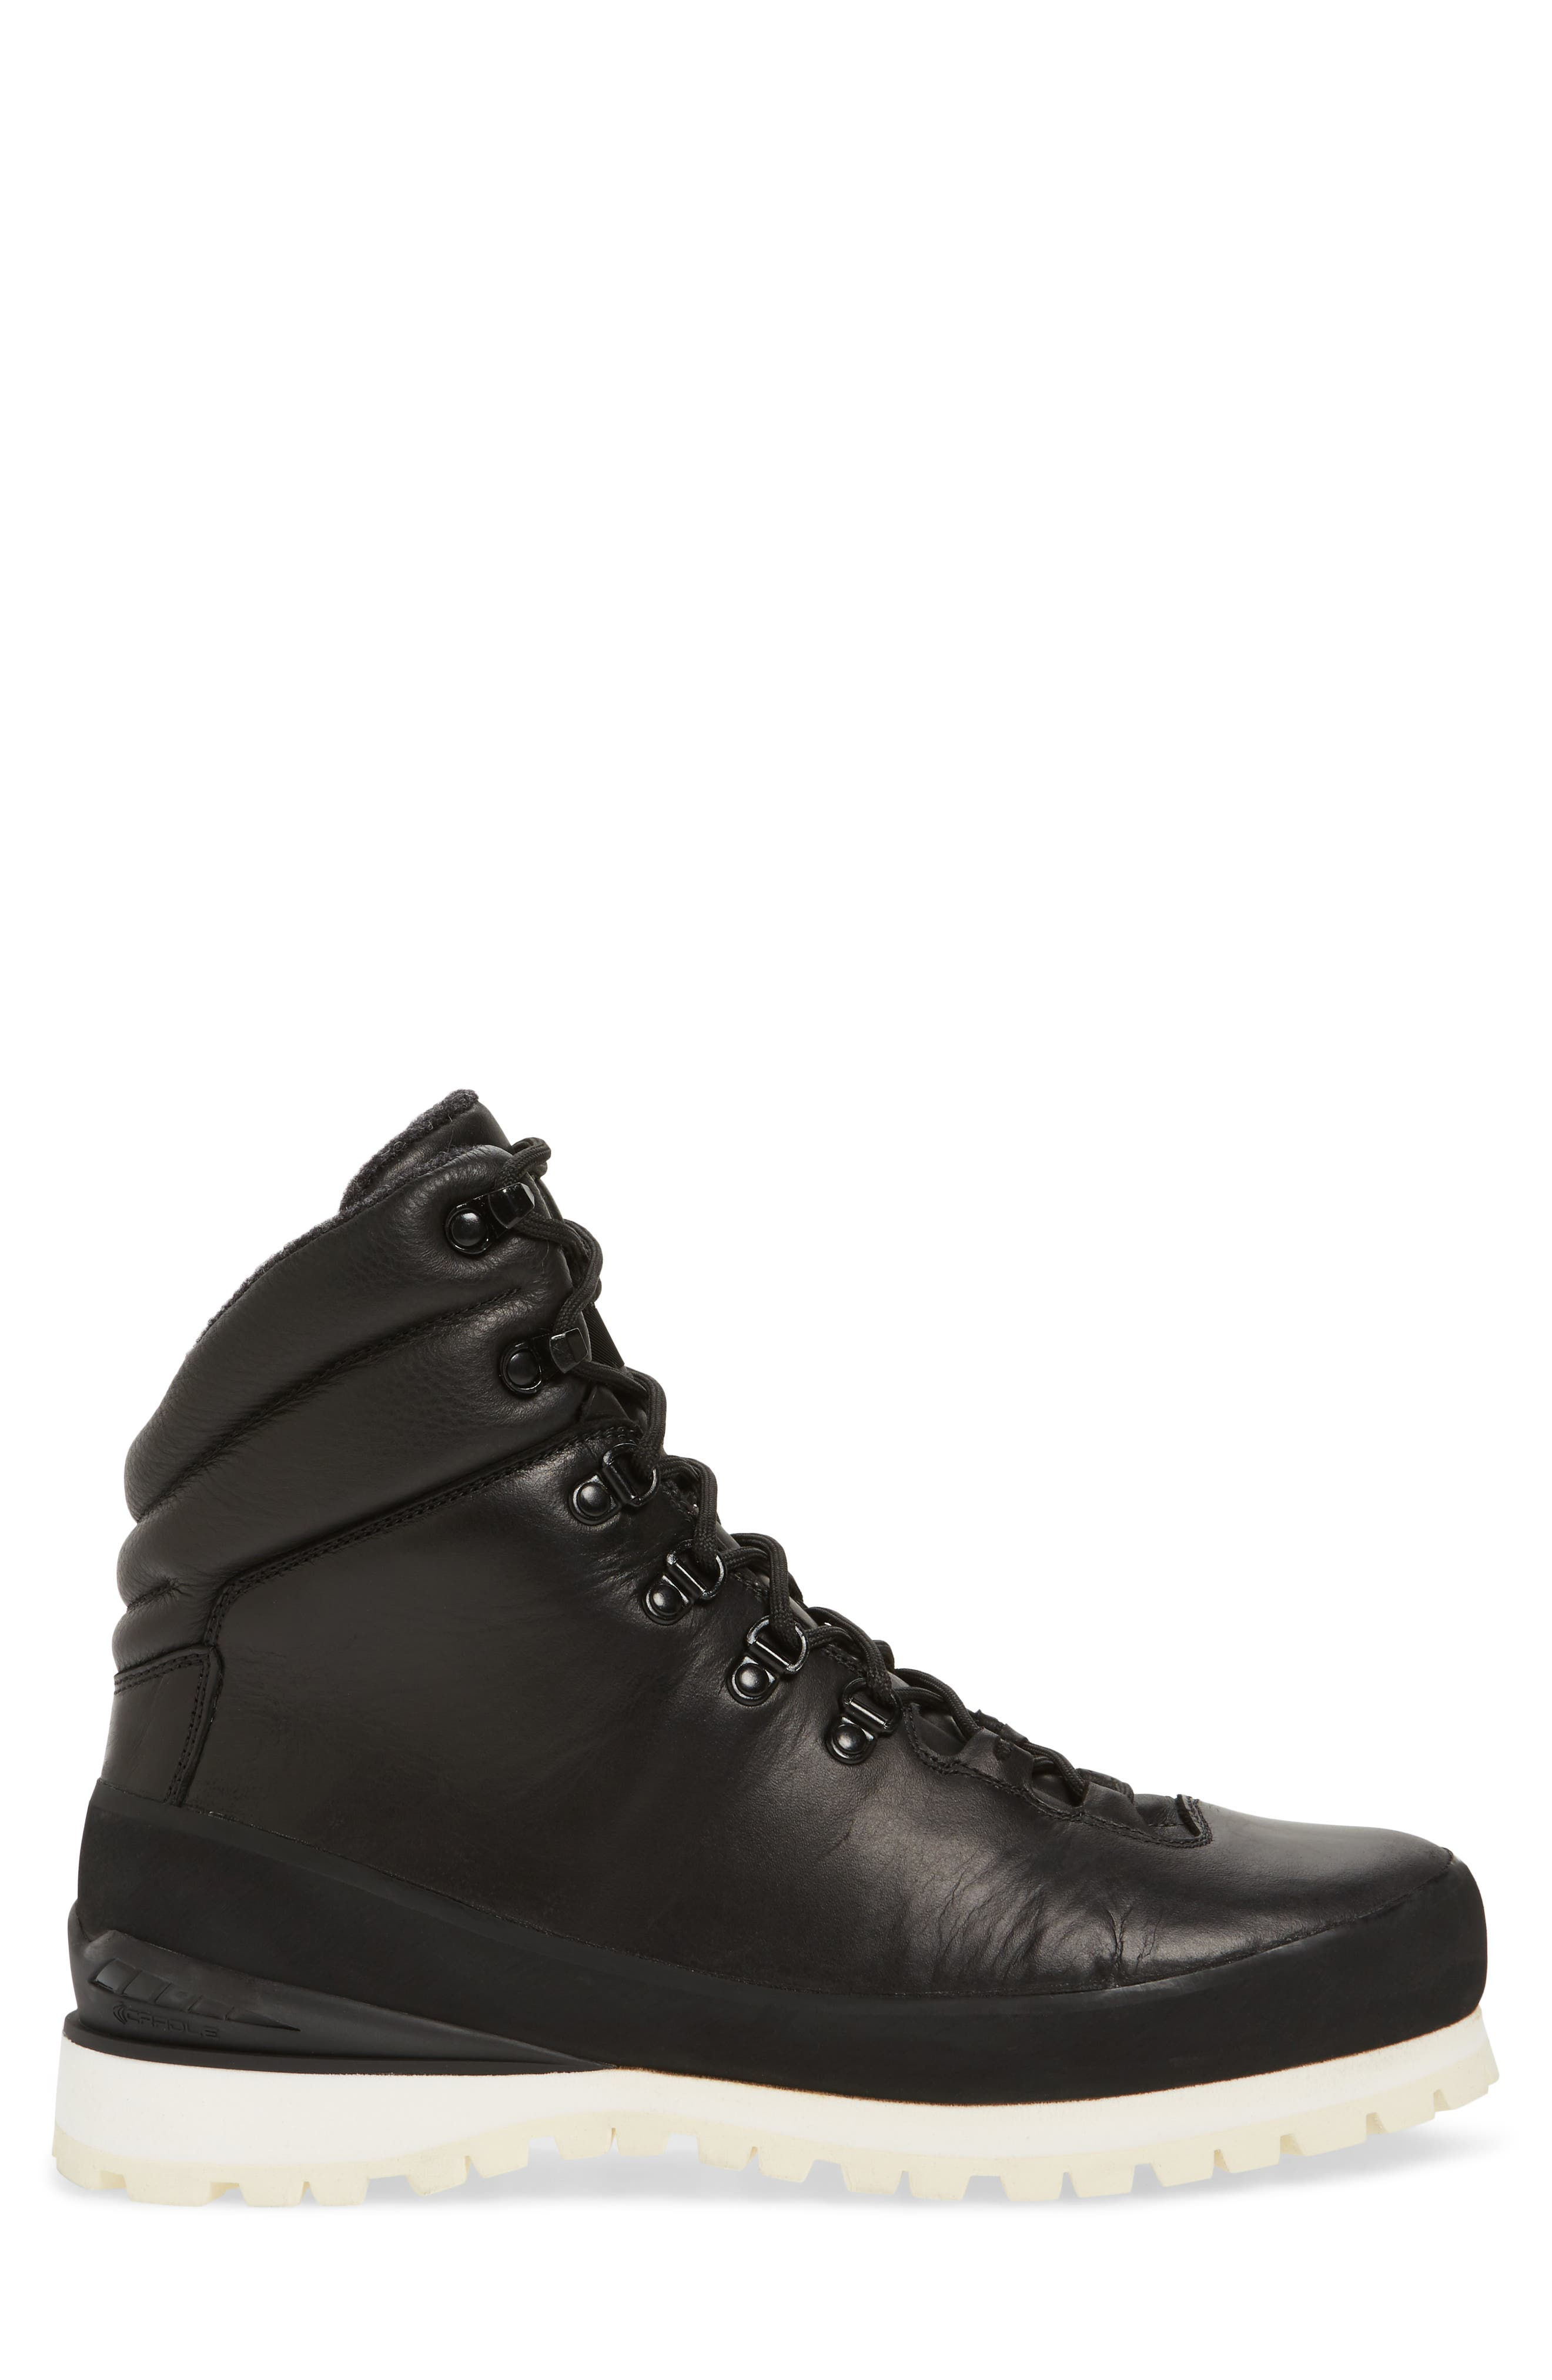 Alternate Image 3  - The North Face Cryos Hiker Boot (Men)